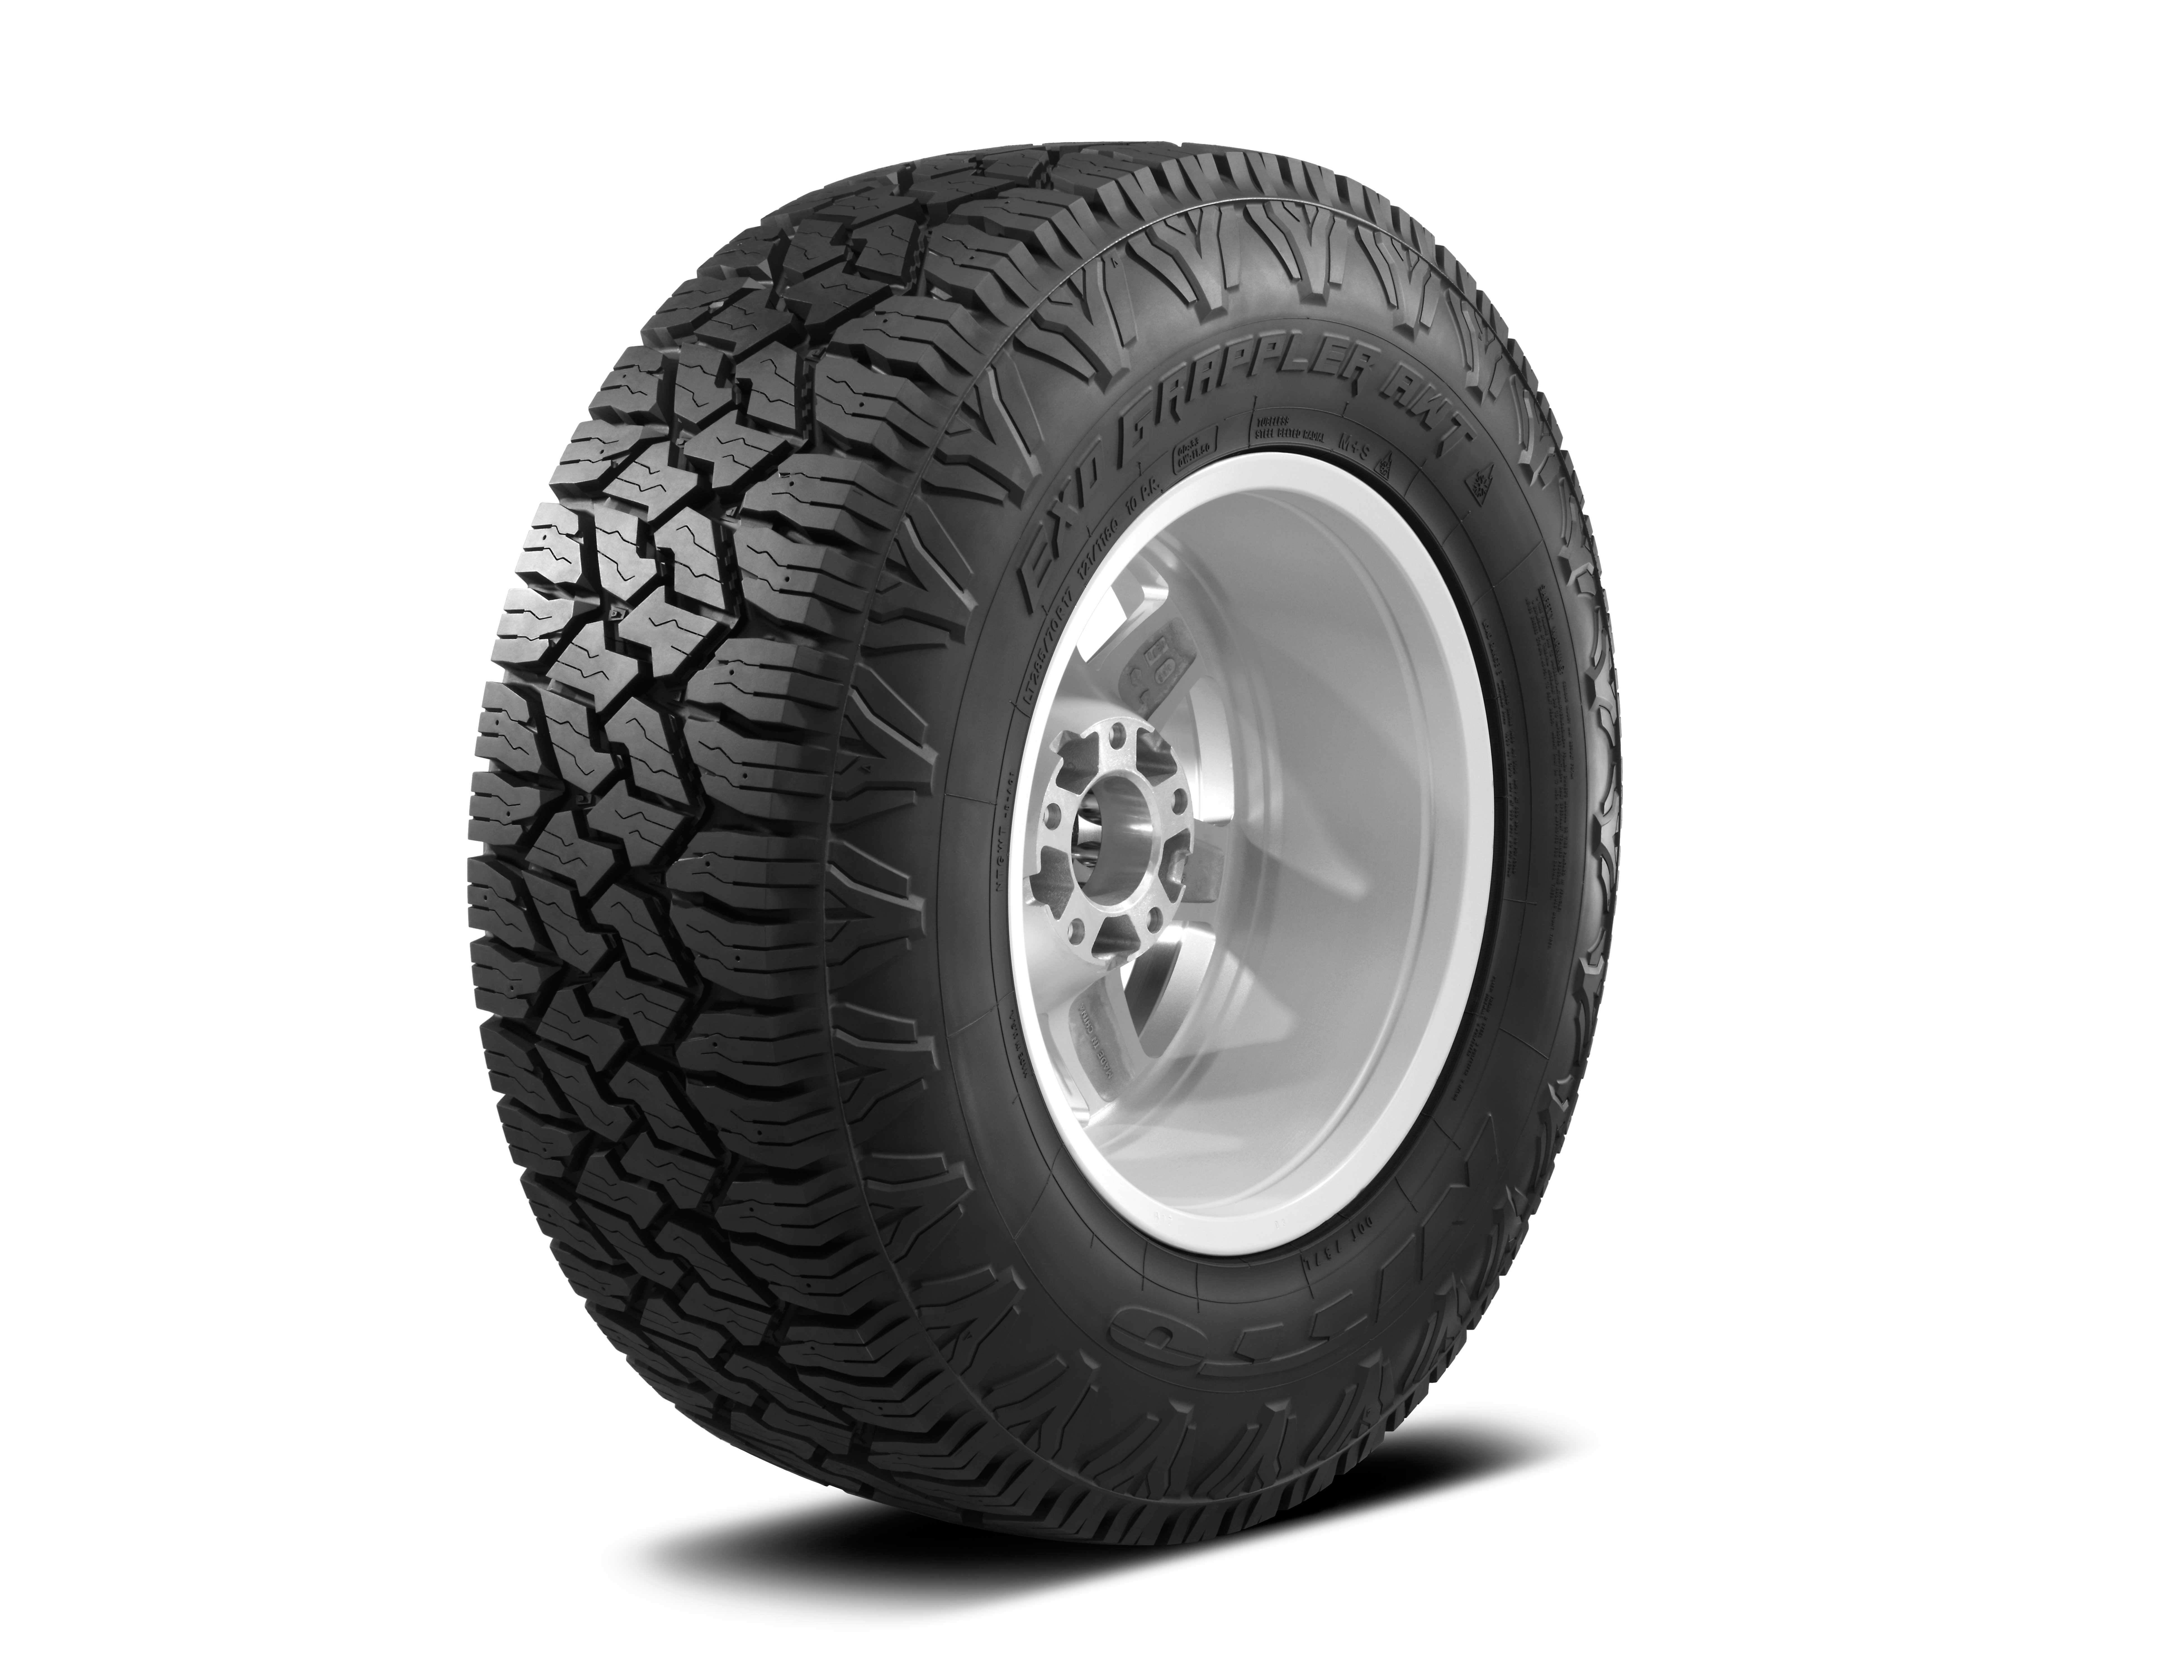 Grappler AWT Tire For Those Need Great Traction Through Every Weather ...